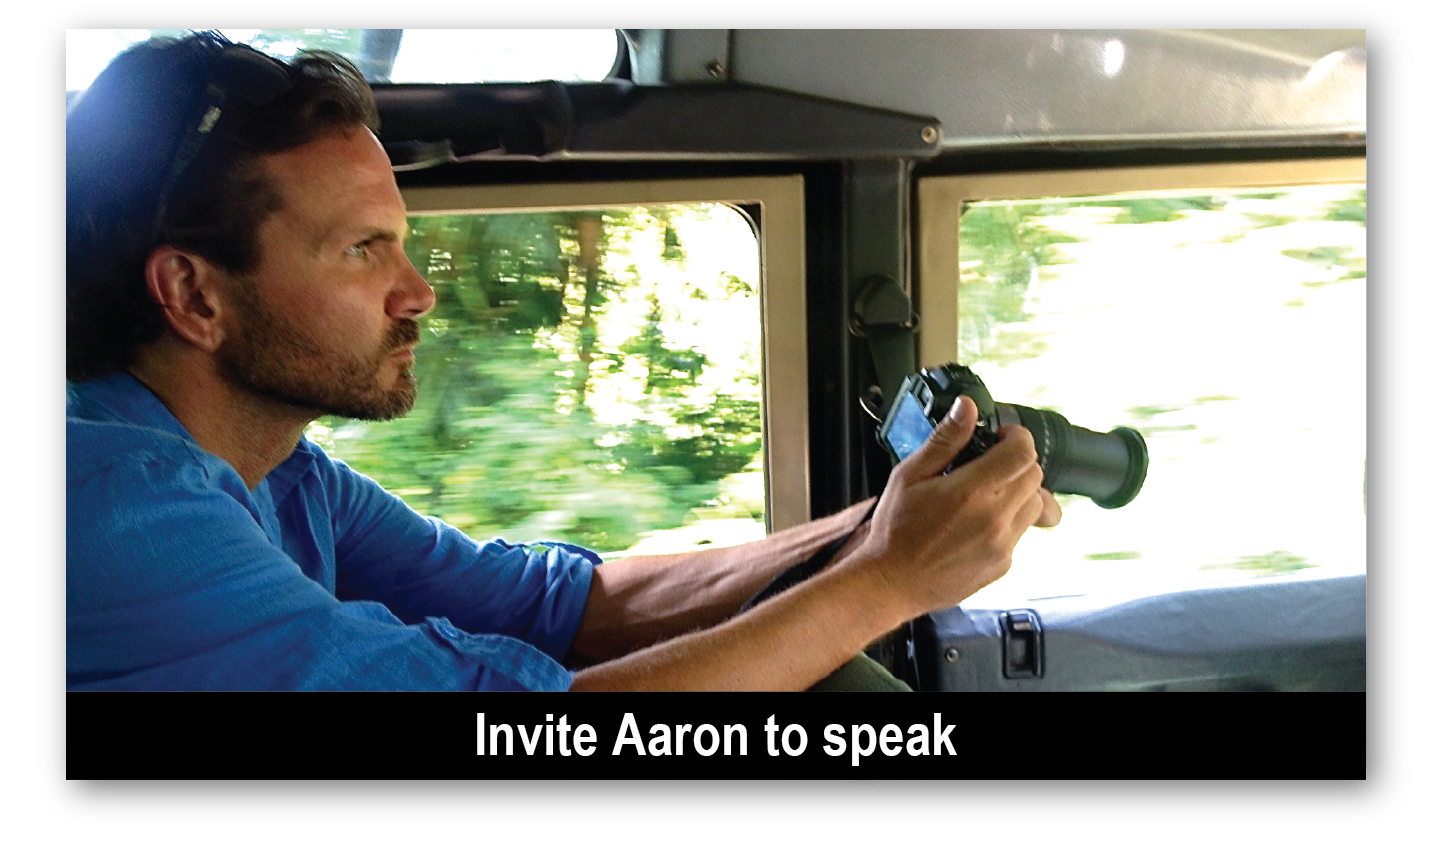 Invite Aaron to Talk